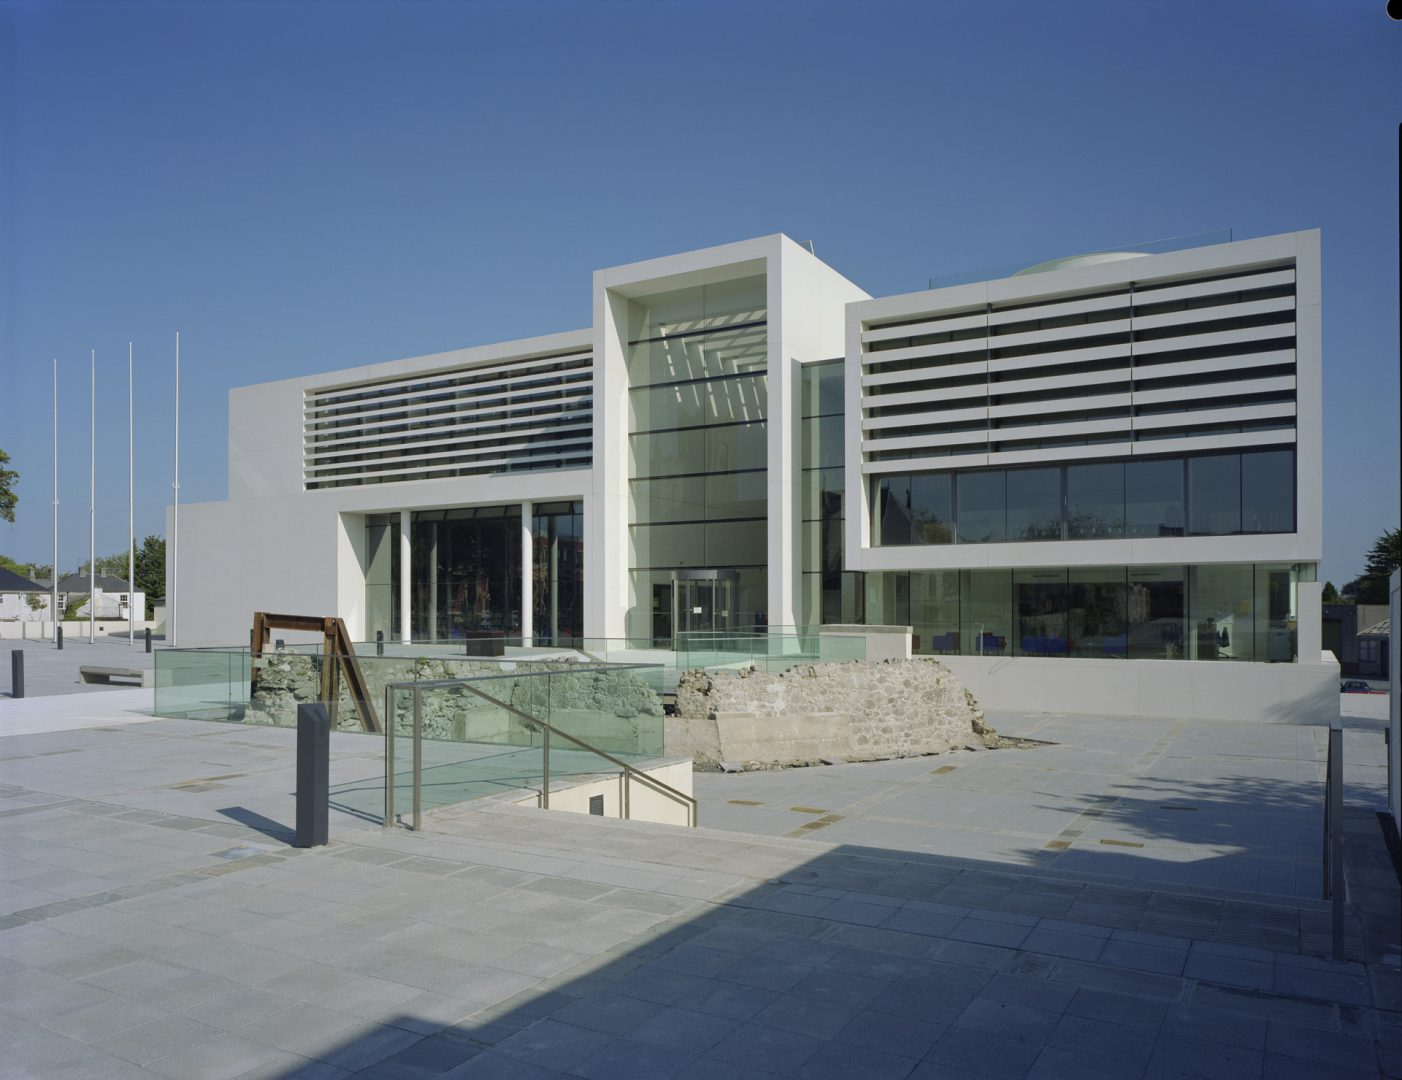 Main facade at Athlone Civic Centre seen across the new public square. The concrete ribs across the facade reject southern sun and are a key part of the building's sustainability strategy.